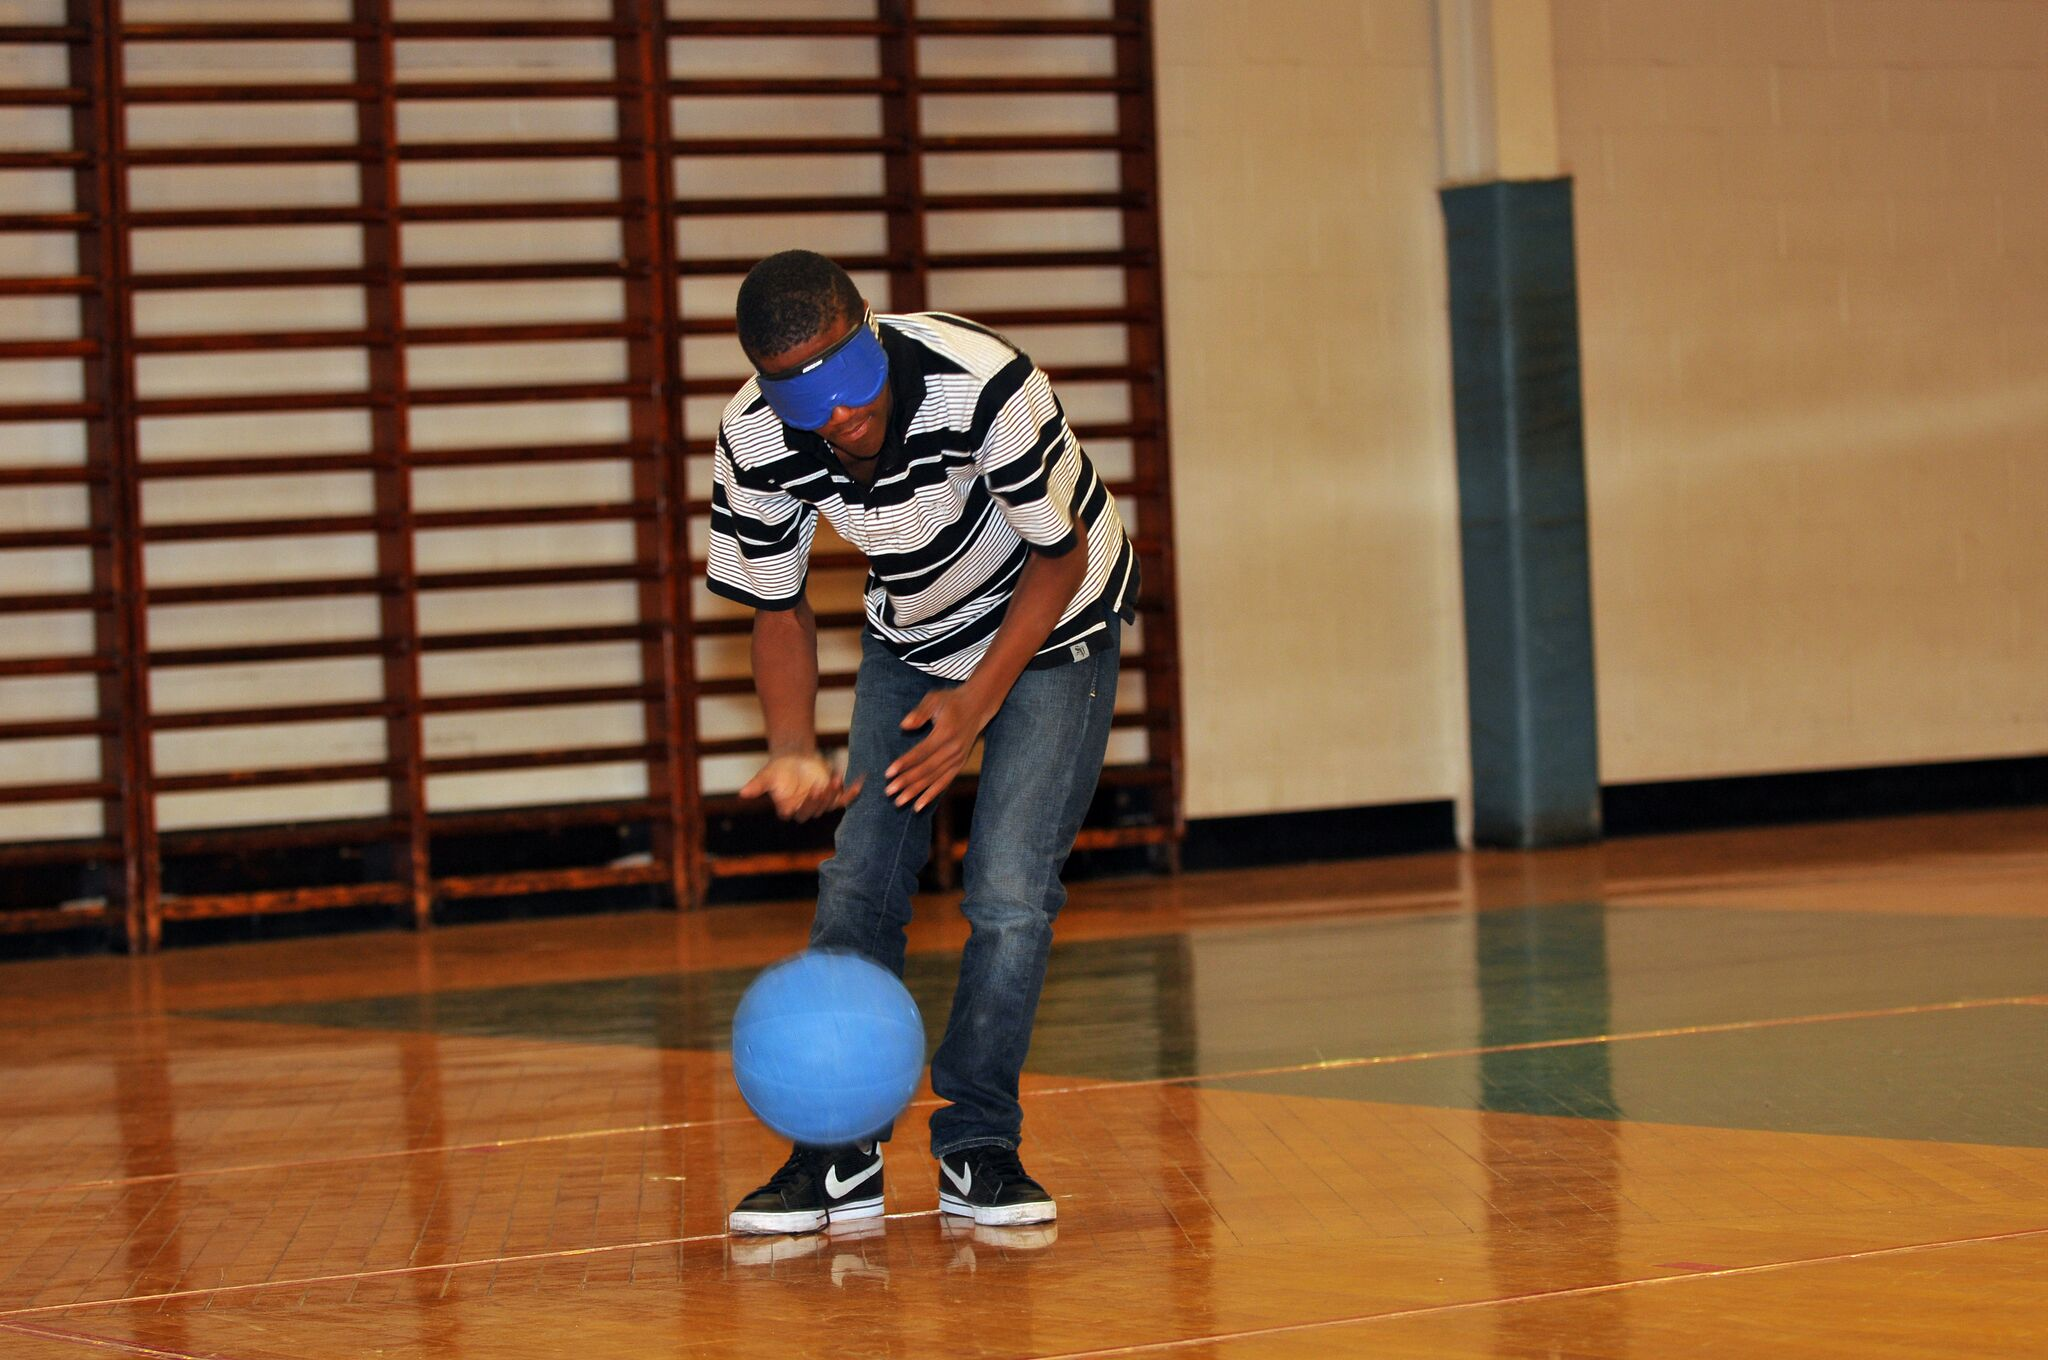 Teenager playing goalball